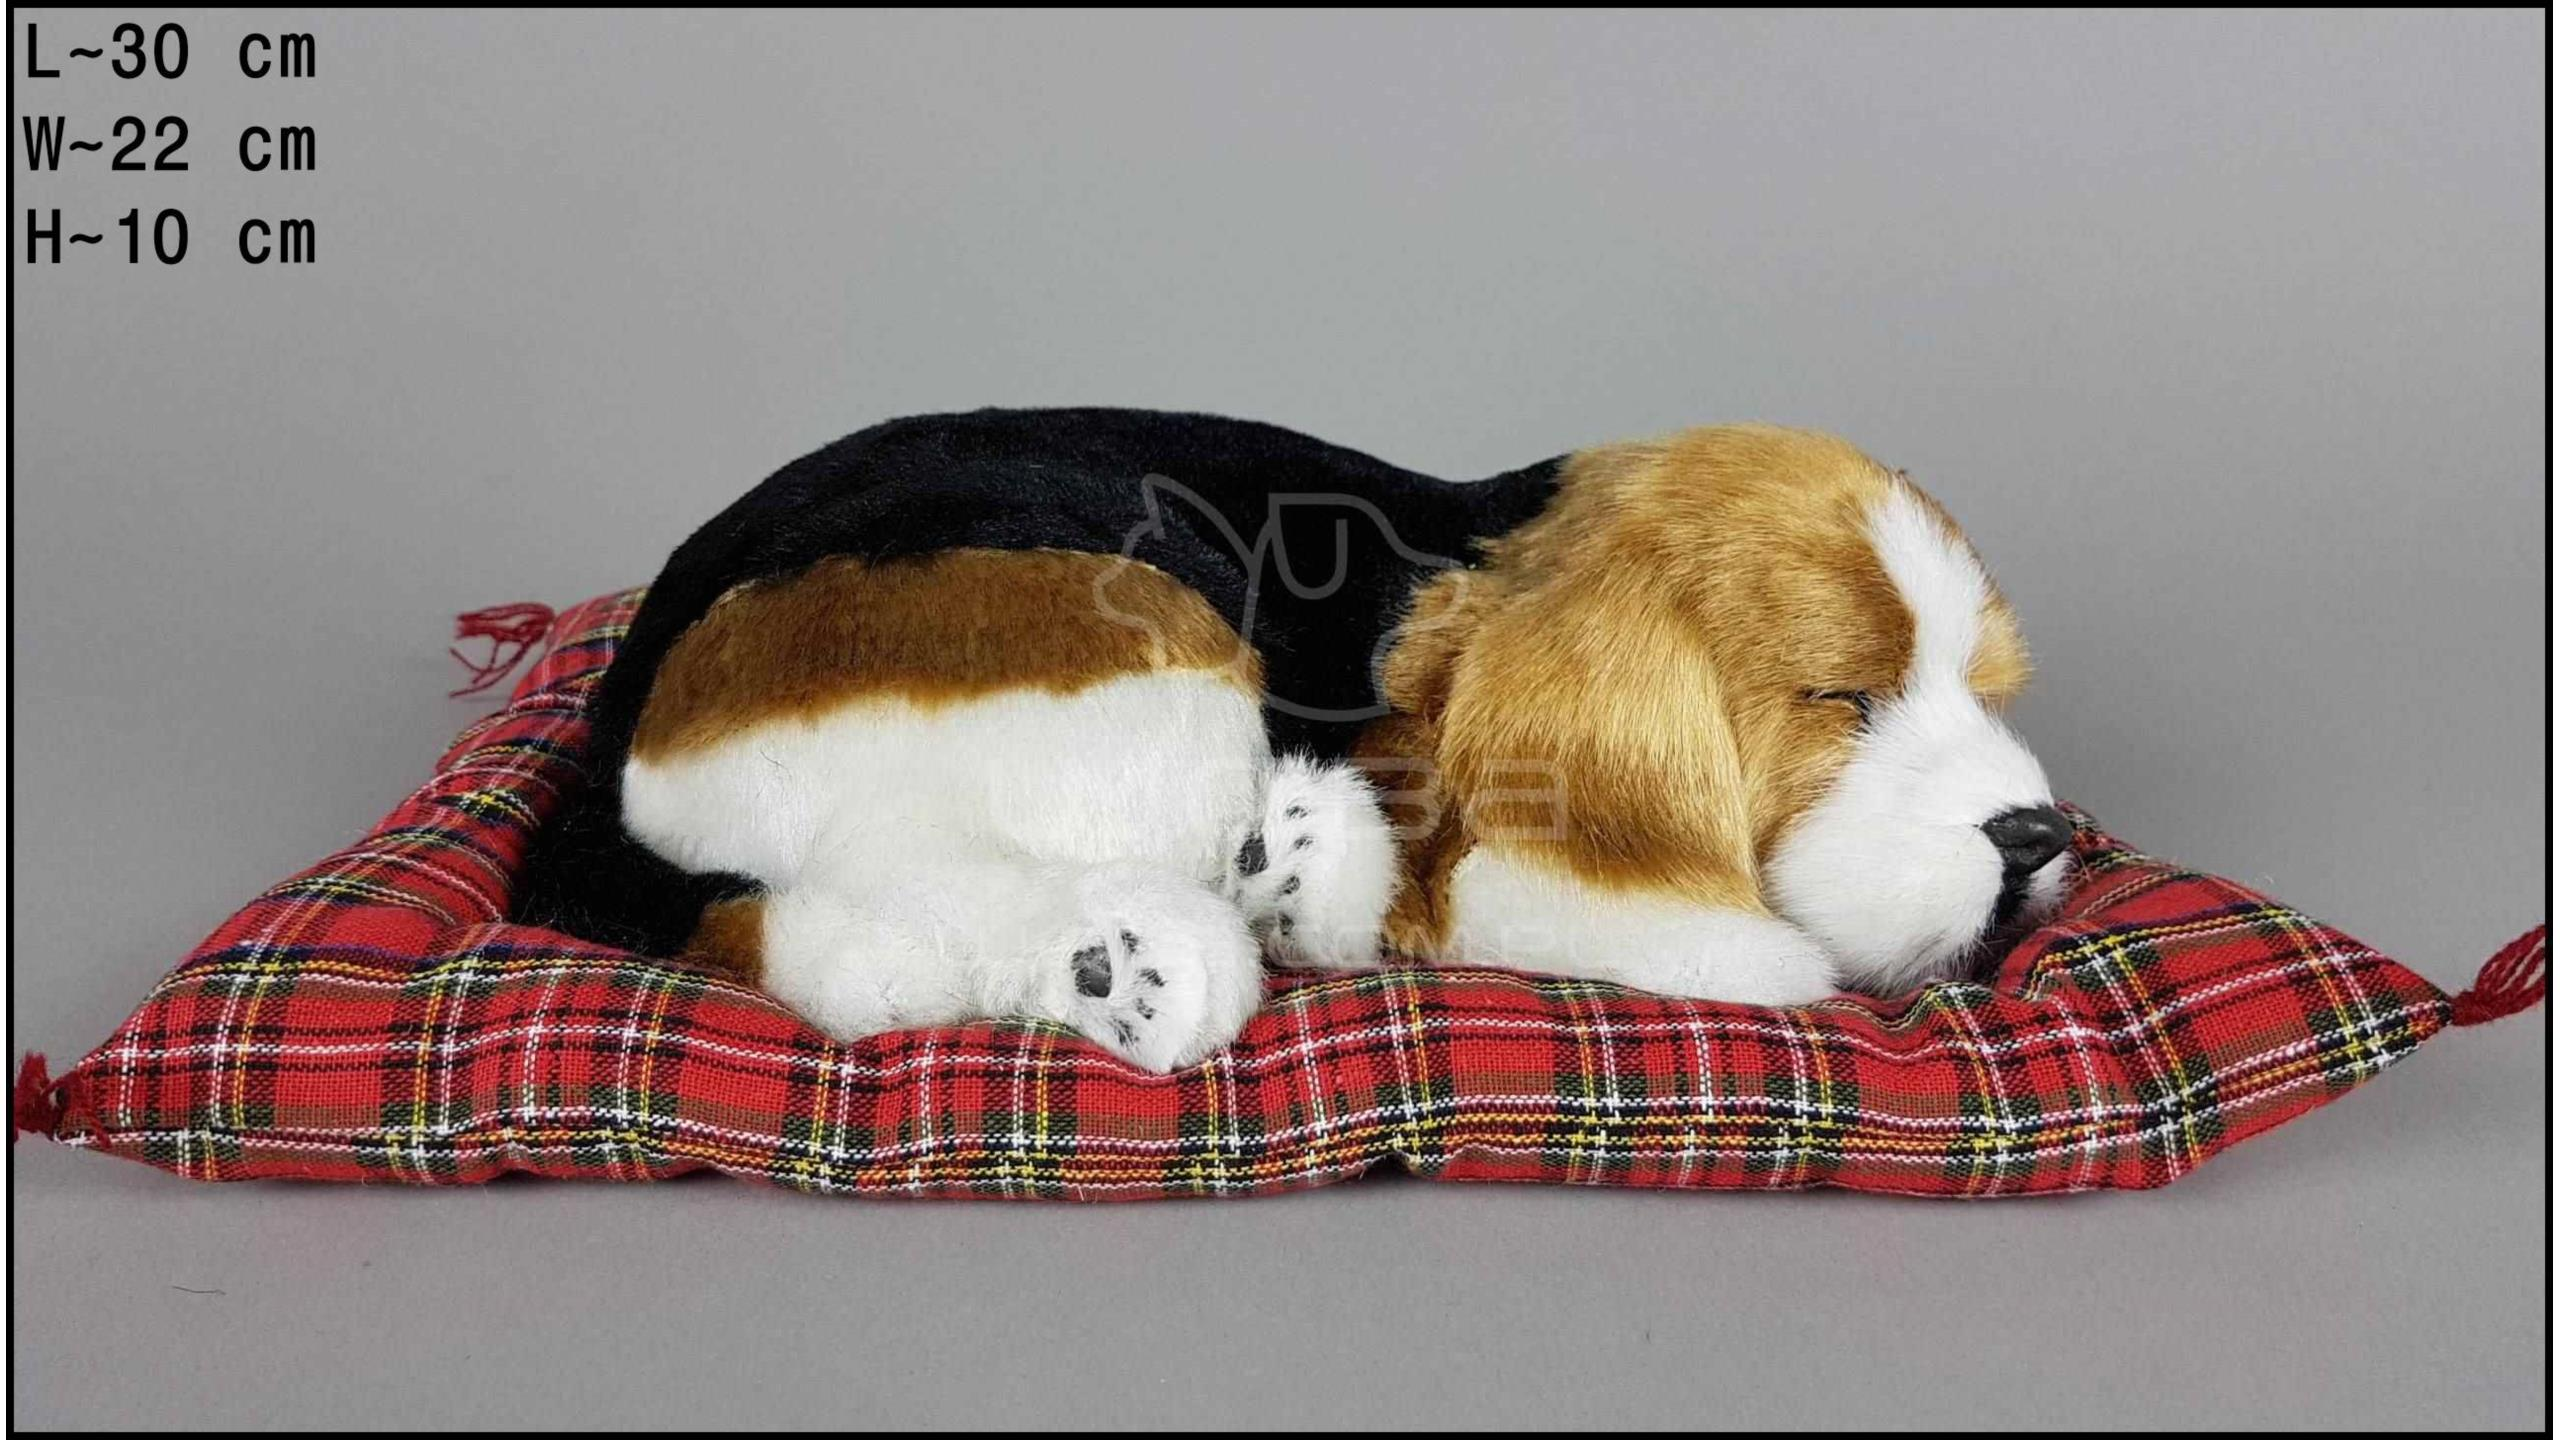 Dog Beagle on a pillow - Size L